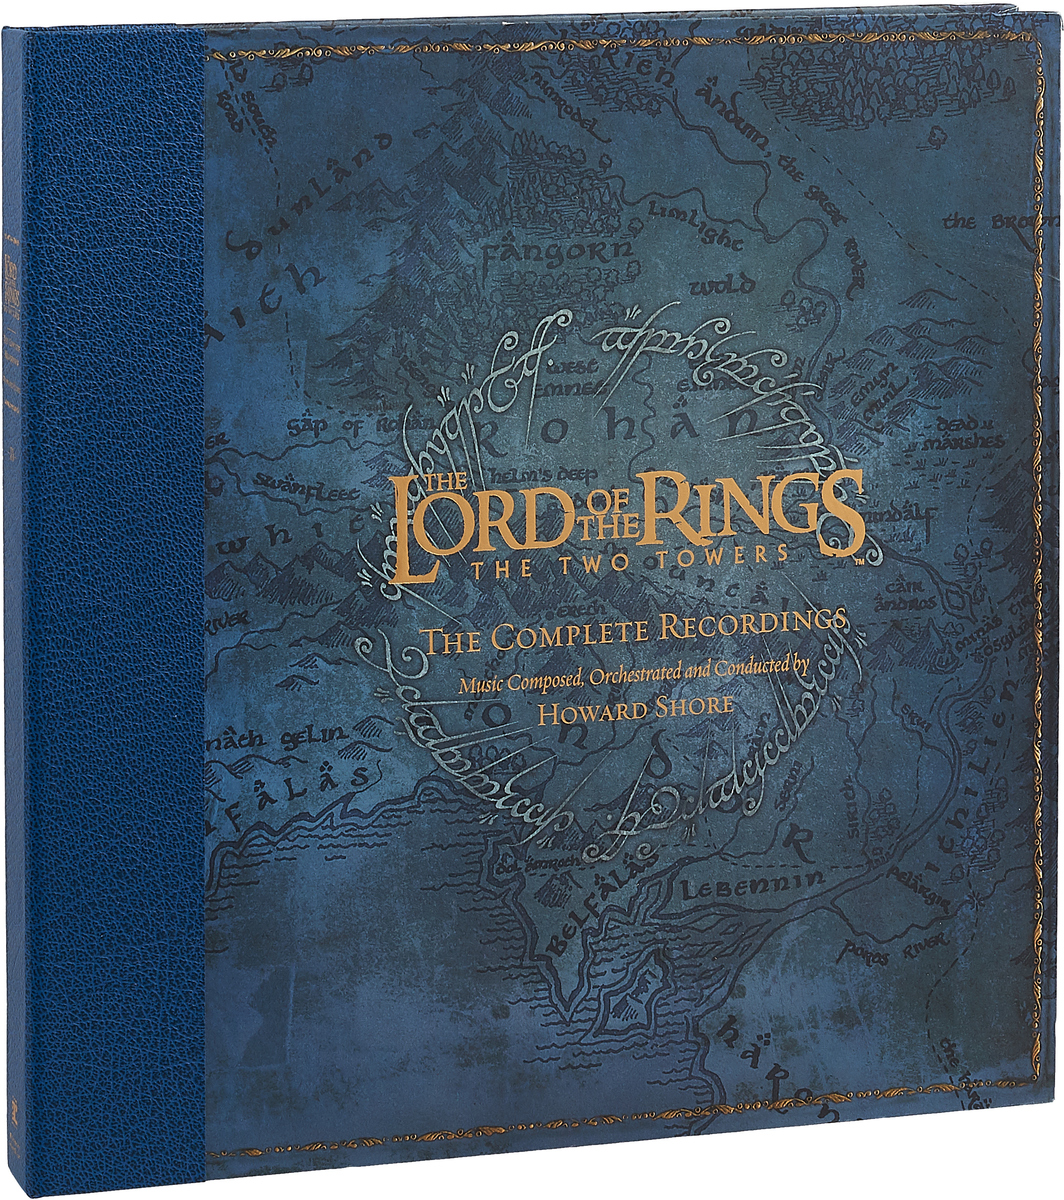 Ховард Шор Howard Shore. The Lord of The Rings. The Two Towers - The Complete Recordings (5 LP) саундтрек саундтрекhoward shore the lord of the rings the return of the king the complete recordings 6 lp 180 gr